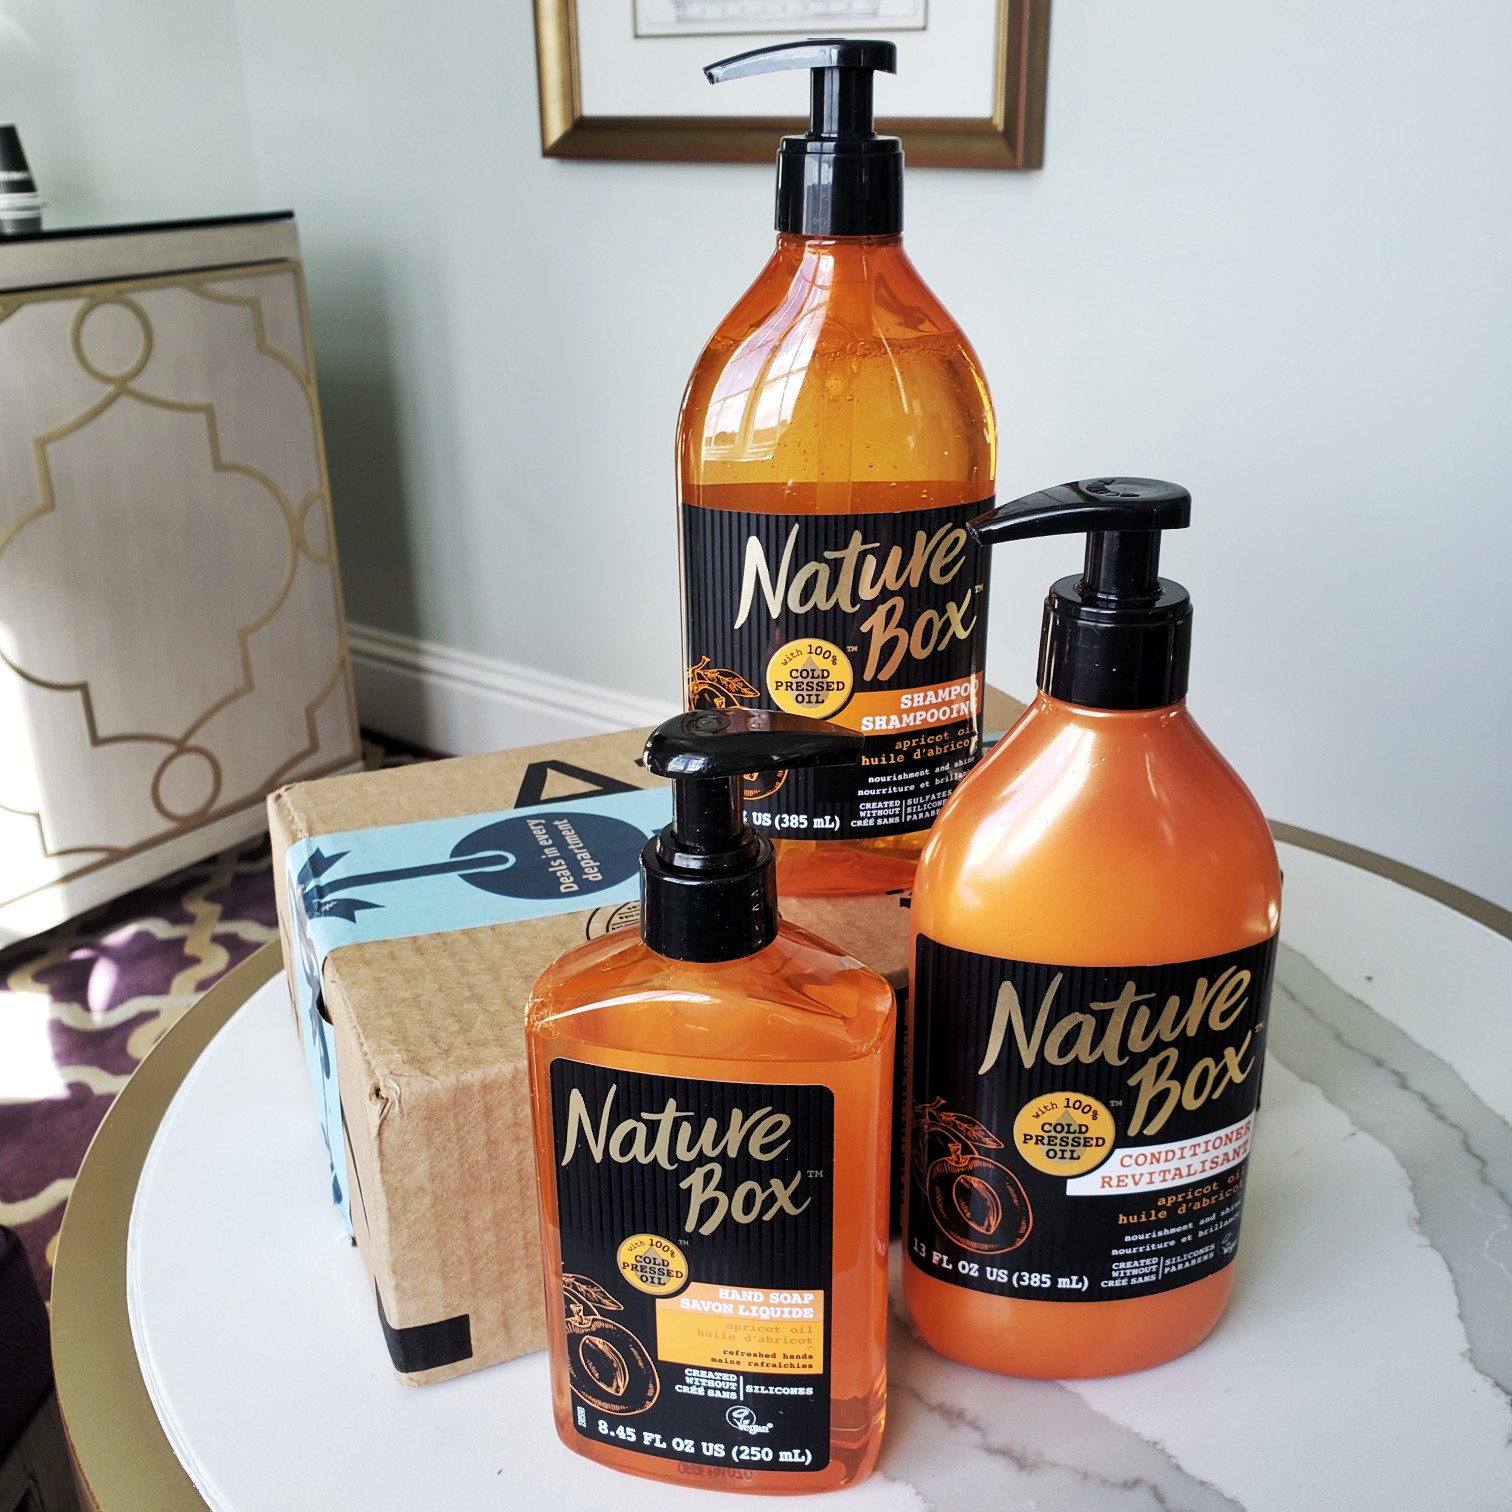 Nature Box Beauty™ Apricot Oil Amazon Prime Review